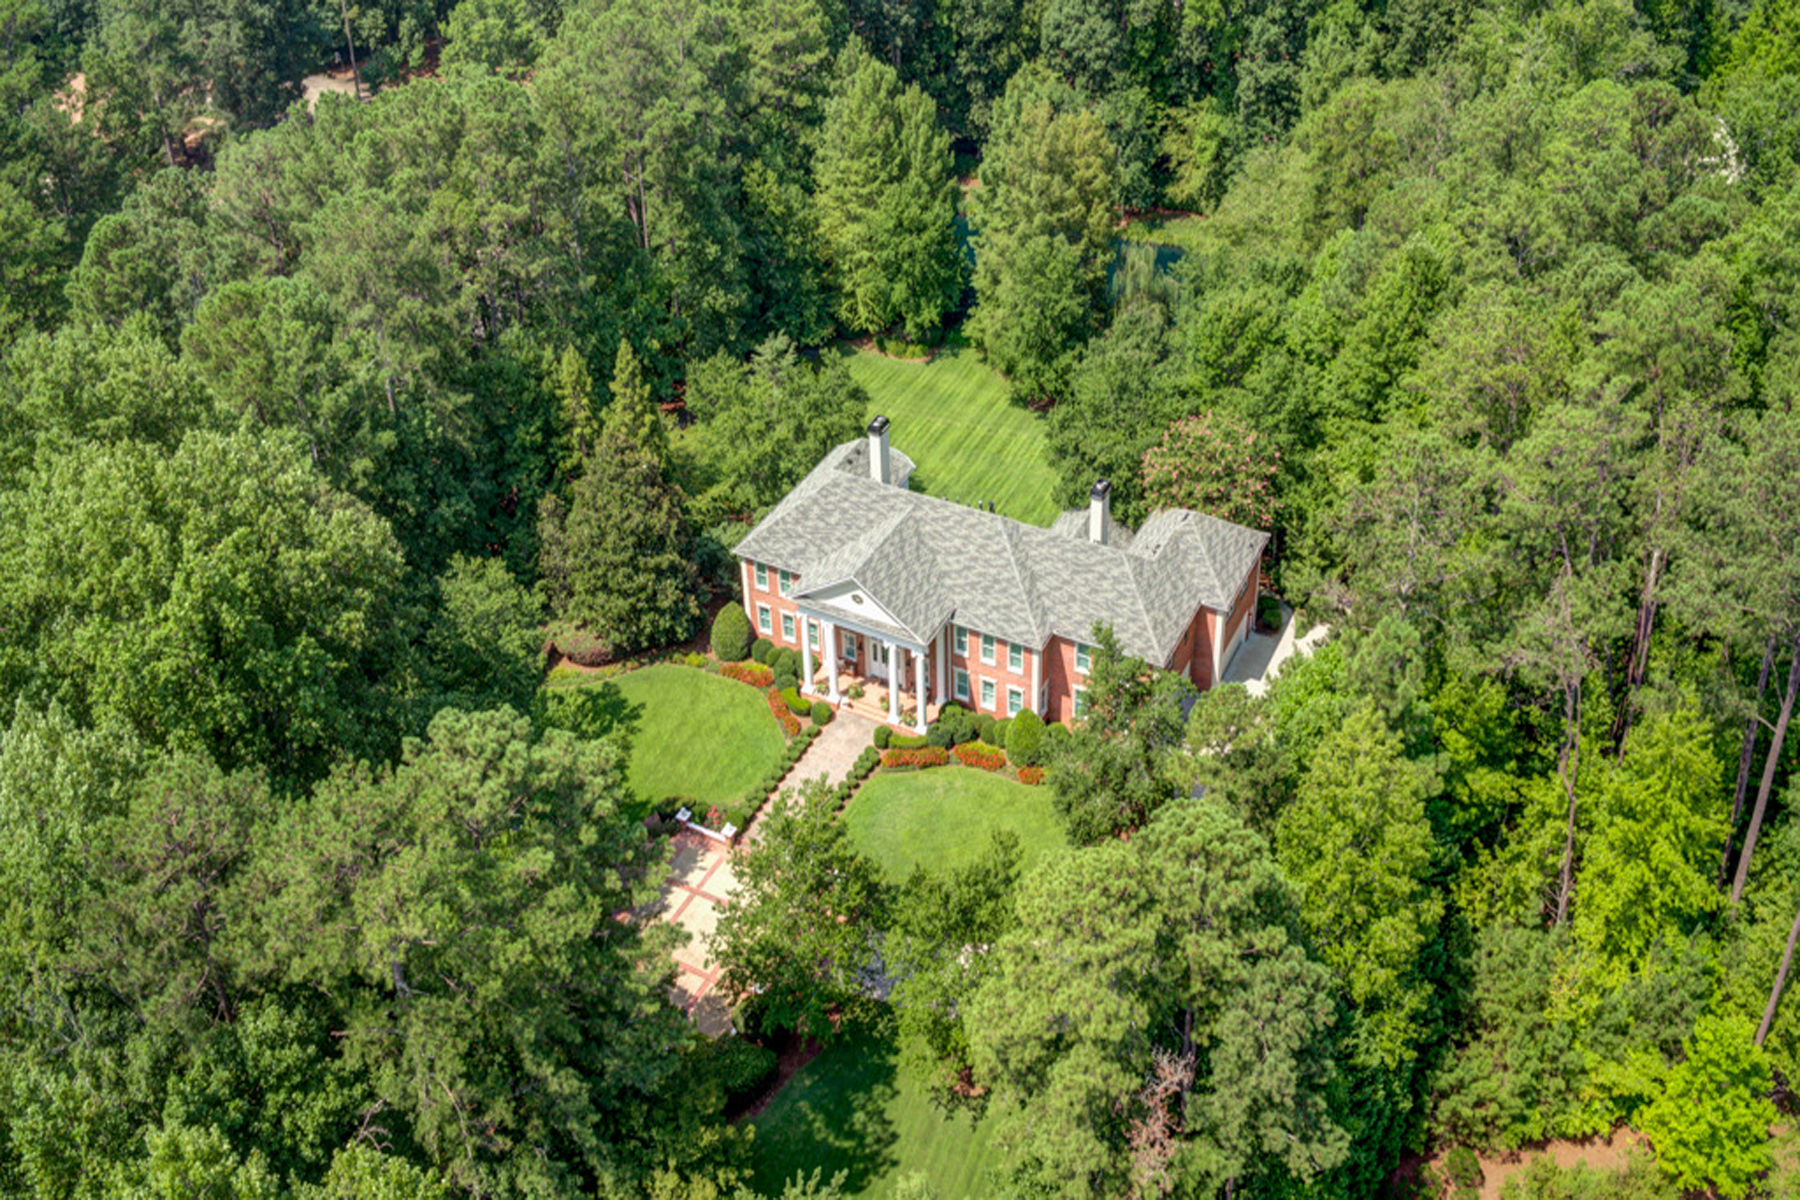 Single Family Home for Sale at Meticulous Custom Built Home On Five Acres 4500 Candacraig Alpharetta, Georgia, 30022 United States